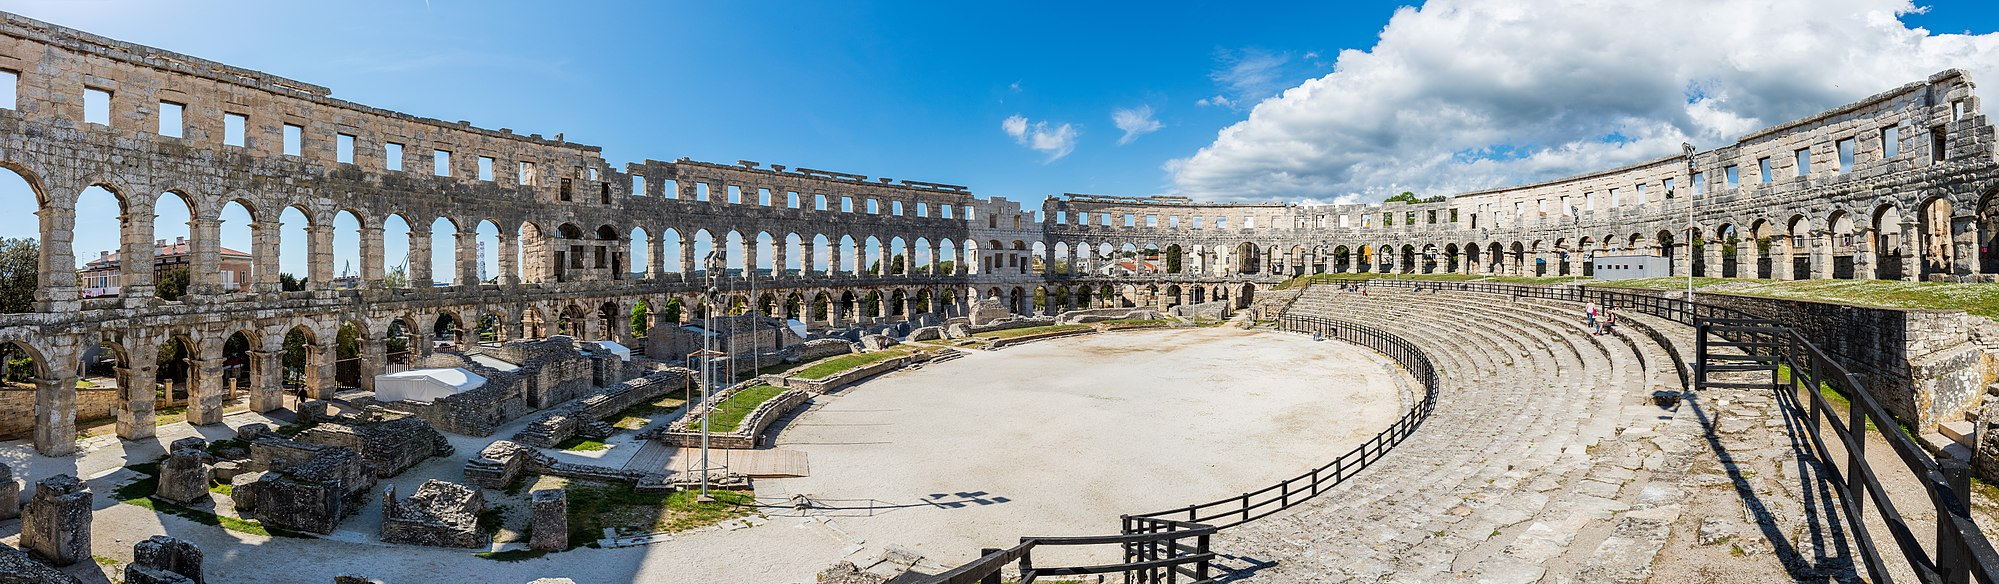 Panoramic view of the interior of the Pula Arena, an amphitheatre located in Pula, Croatia.